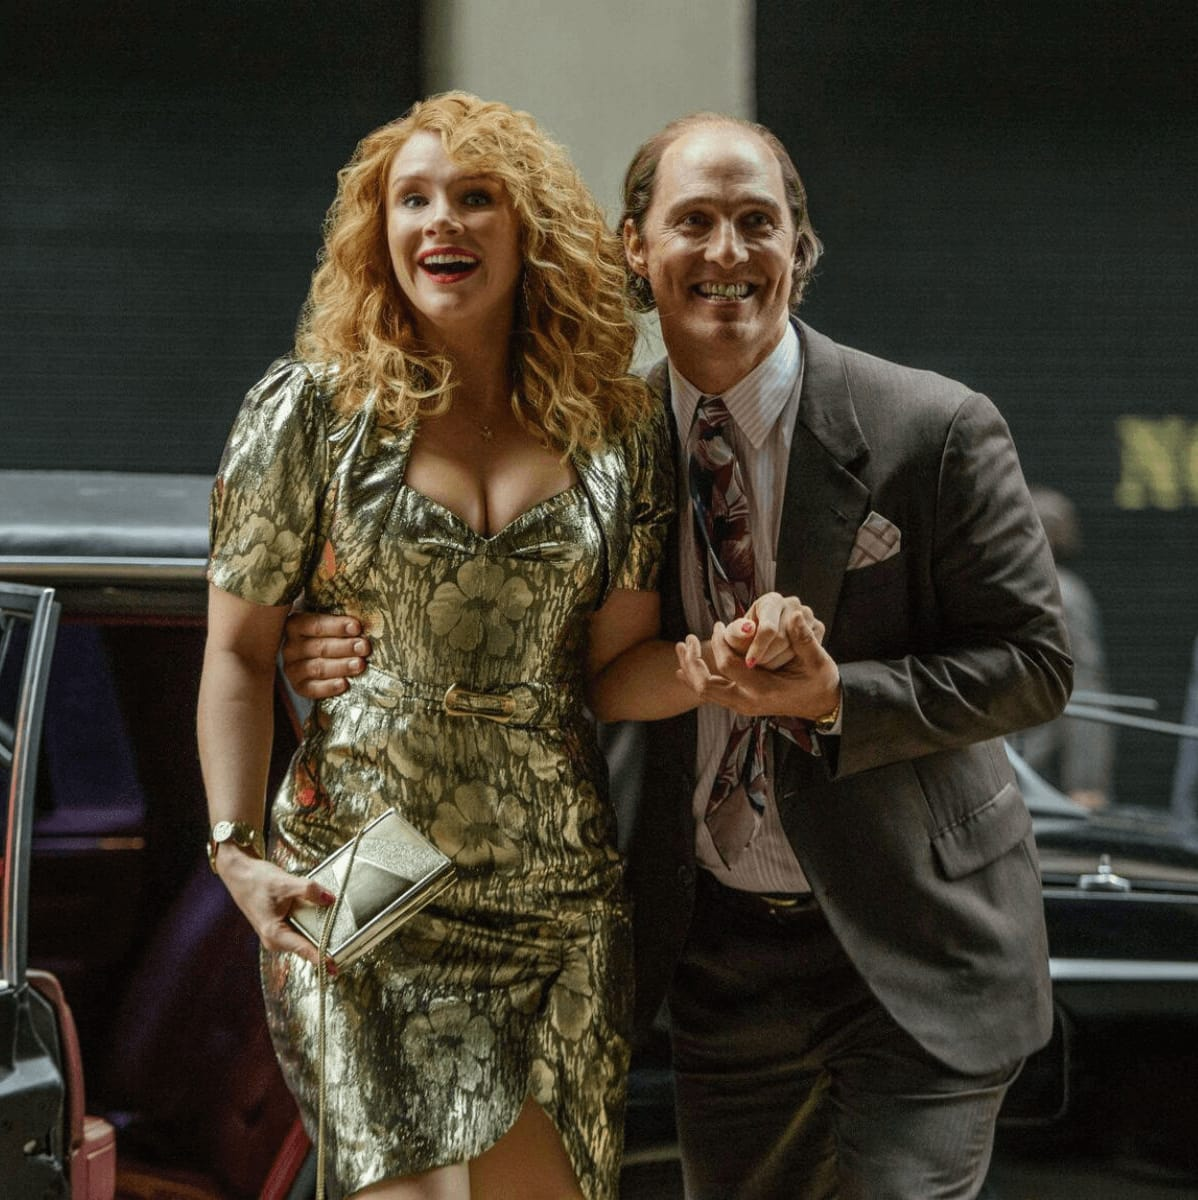 Bryce Dallas Howard and Matthew McConaughey in Gold